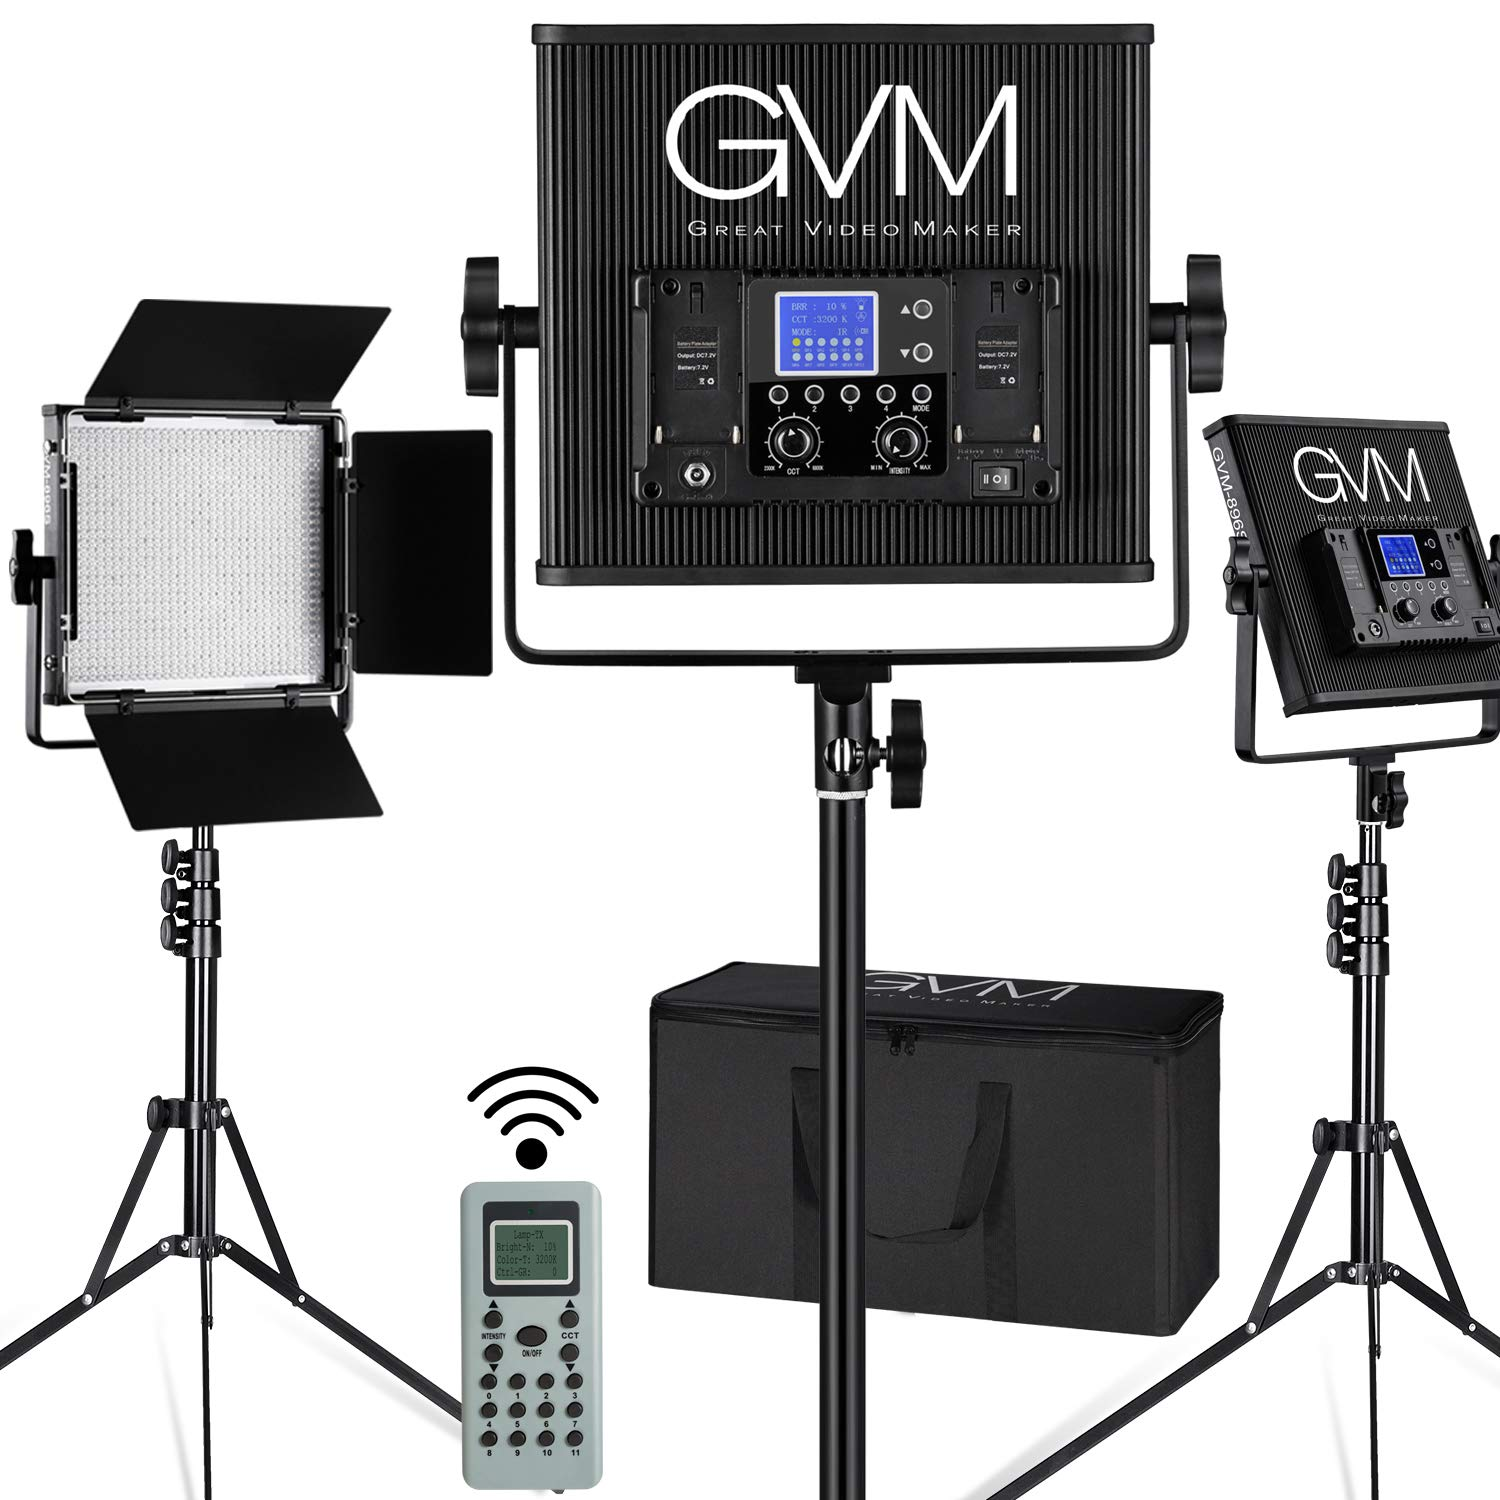 GVM LED Video Light Dimmable Bi-Color Aluminum Alloy Body with Wireless Controller for Studio, YouTube Video Photography, 896S-B3L